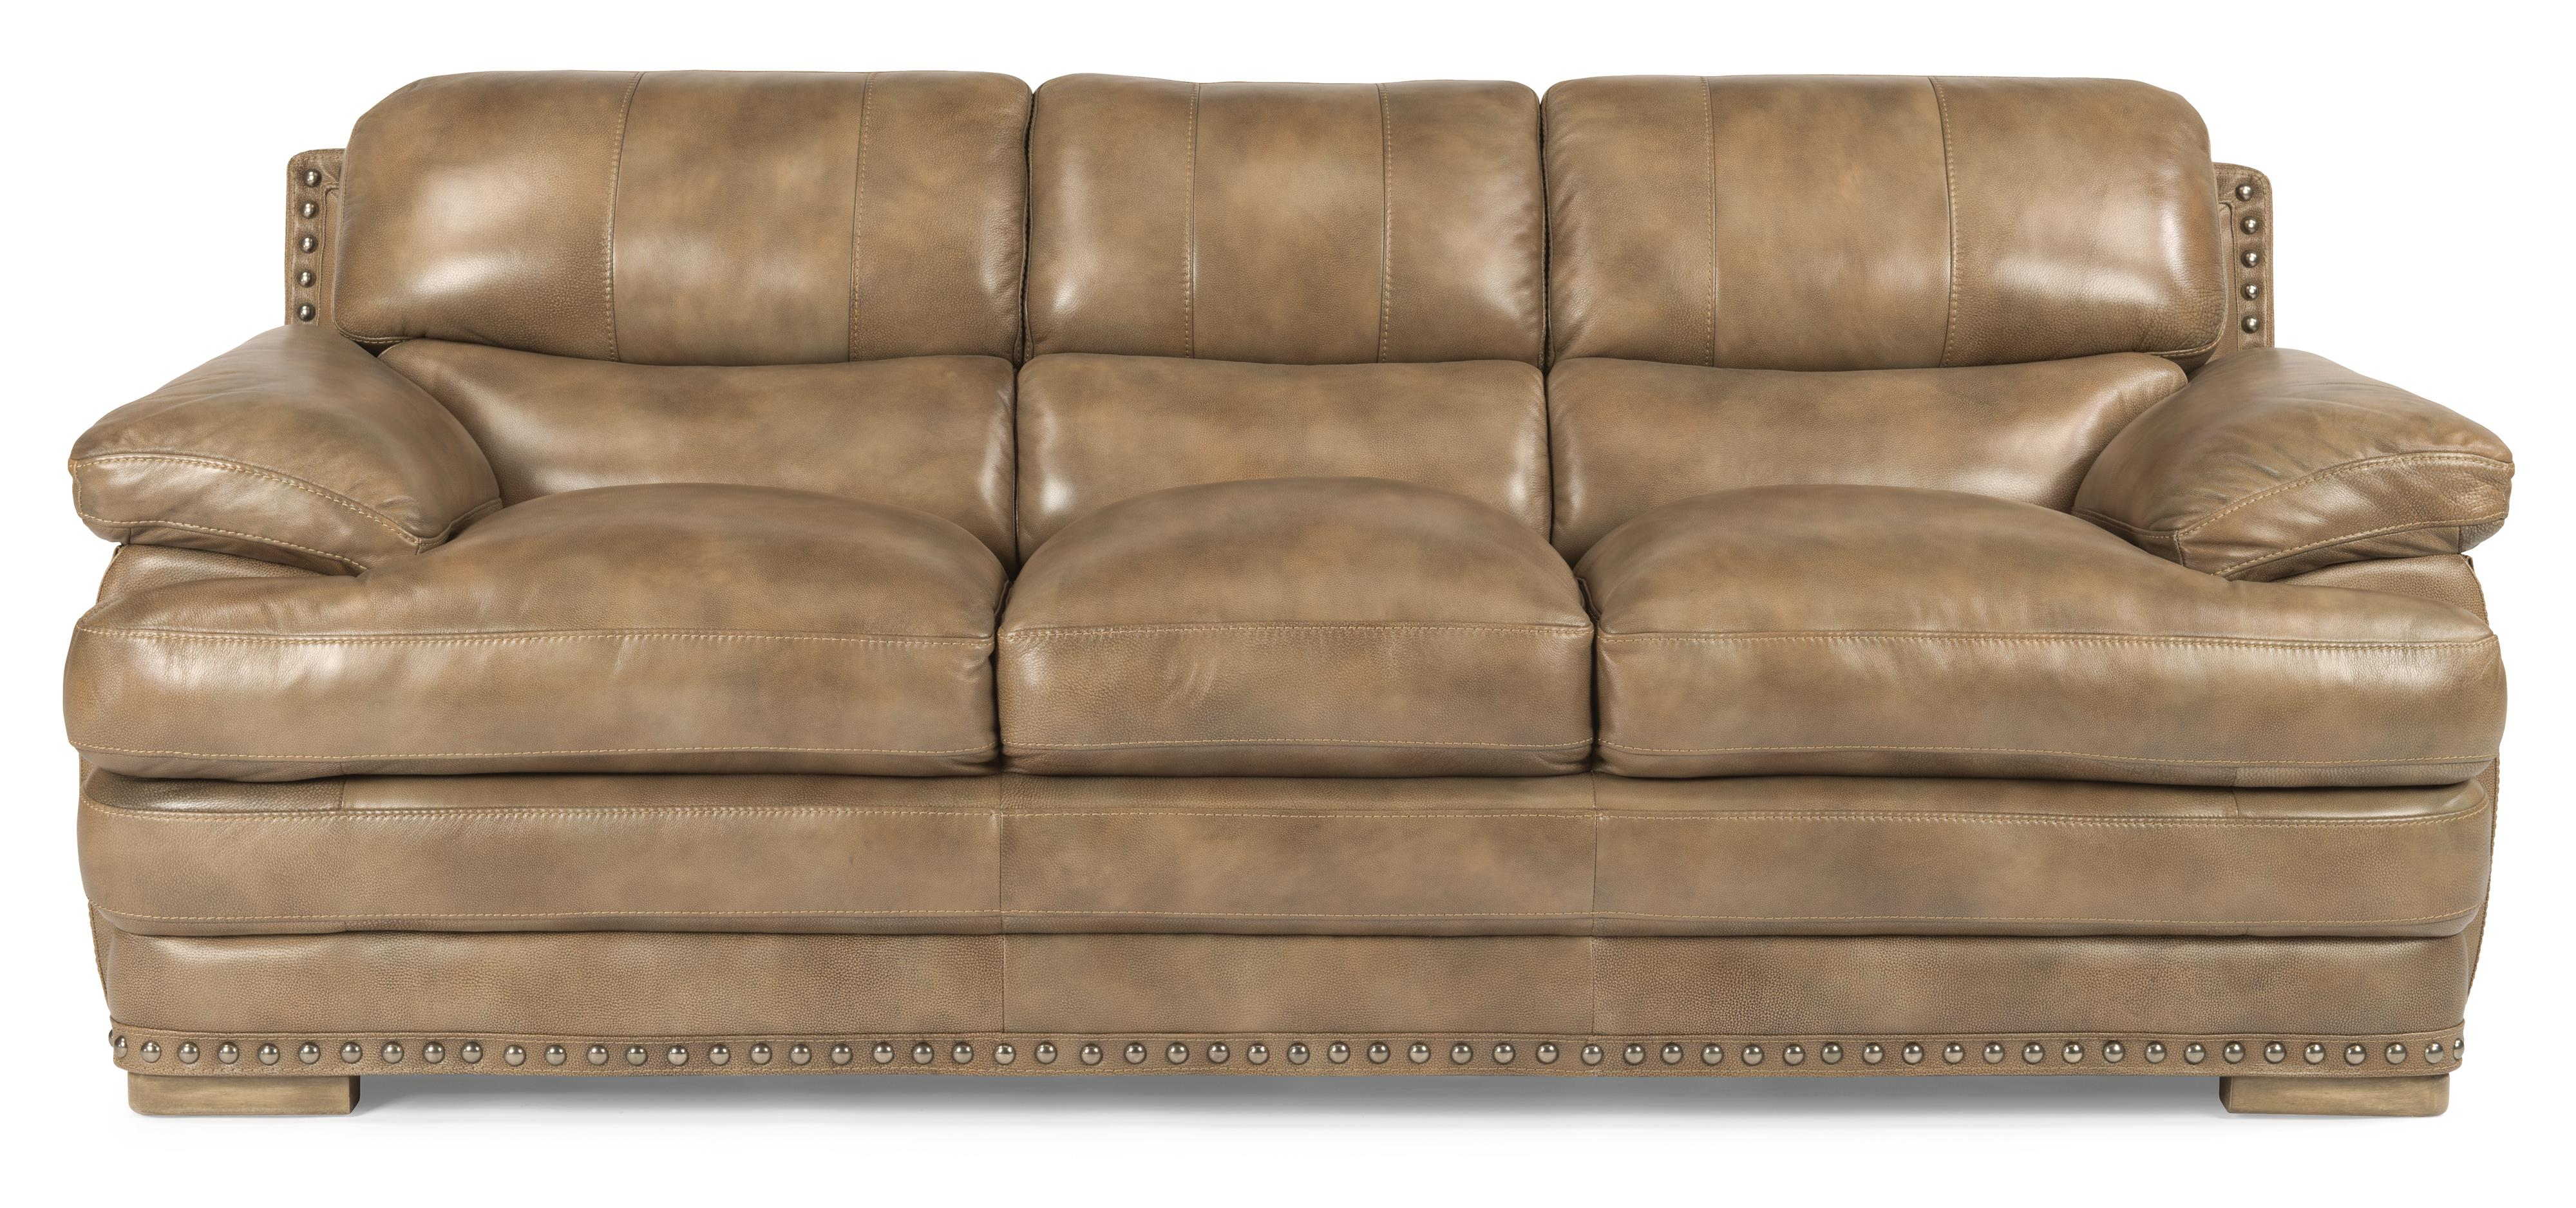 Flexsteel Latitudes Dylan 1627 31 Stationary Leather Sofa W  ~ Leather Sofa With Nailheads